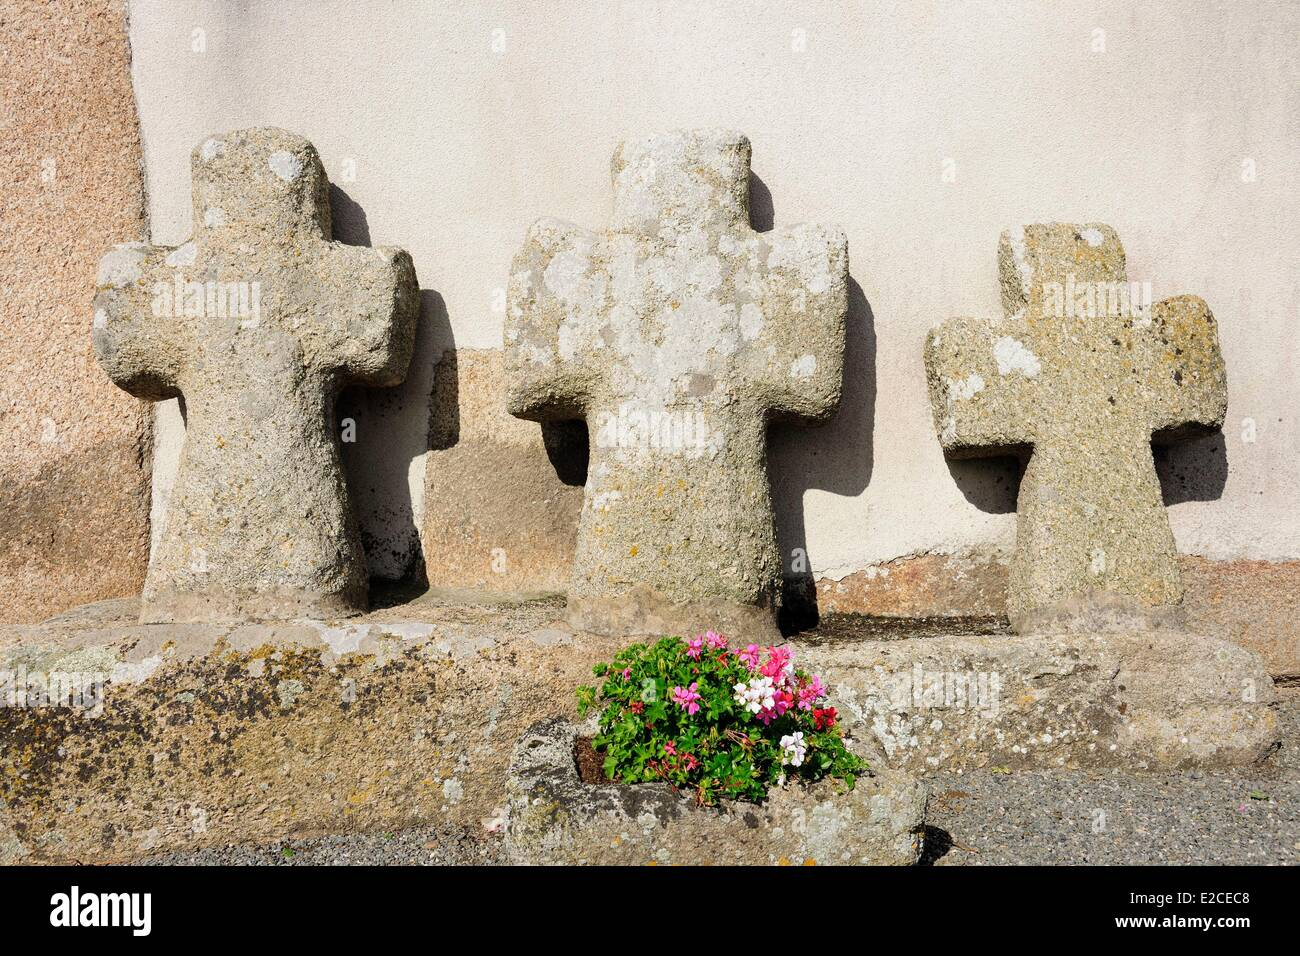 France, Finistere, Pagan country, the Legends Coast, Kerlouan, the Croazou chapel - Stock Image